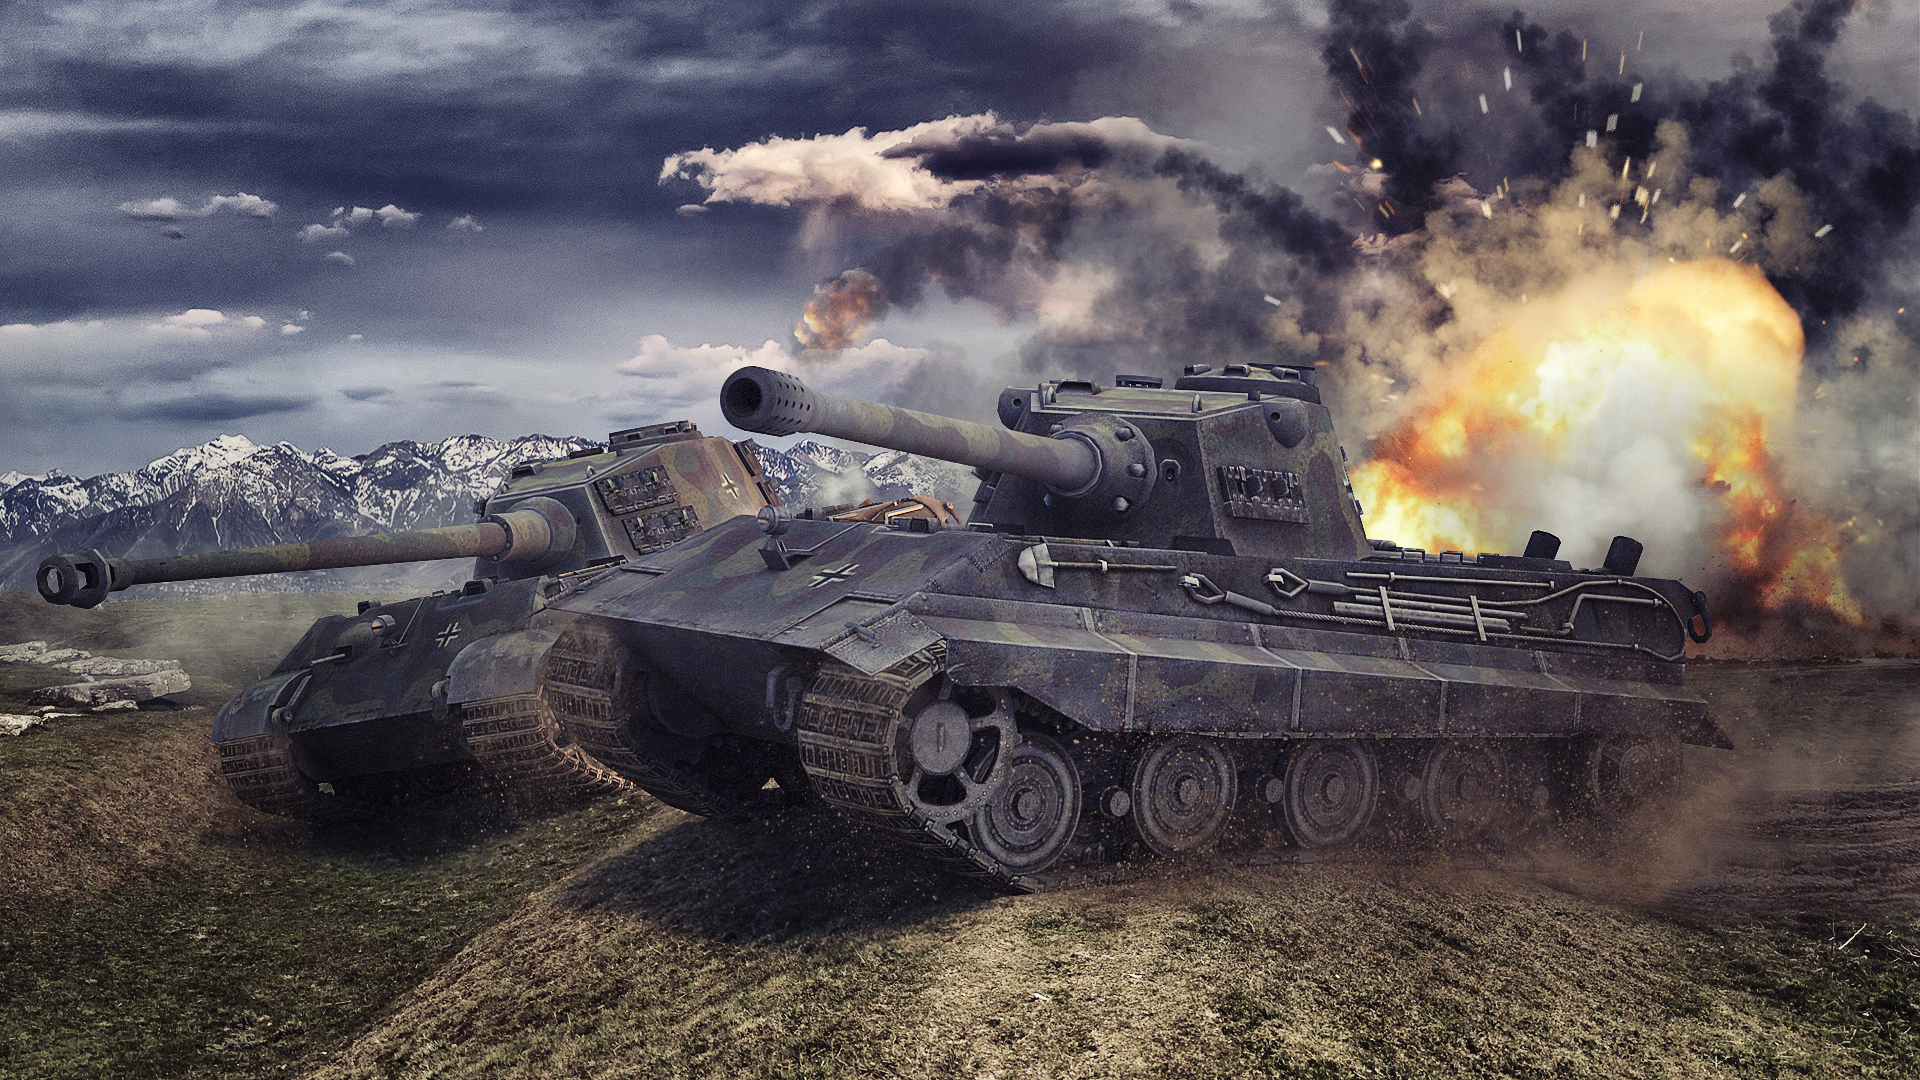 world of tanks tanks tiger ii e 75 games military